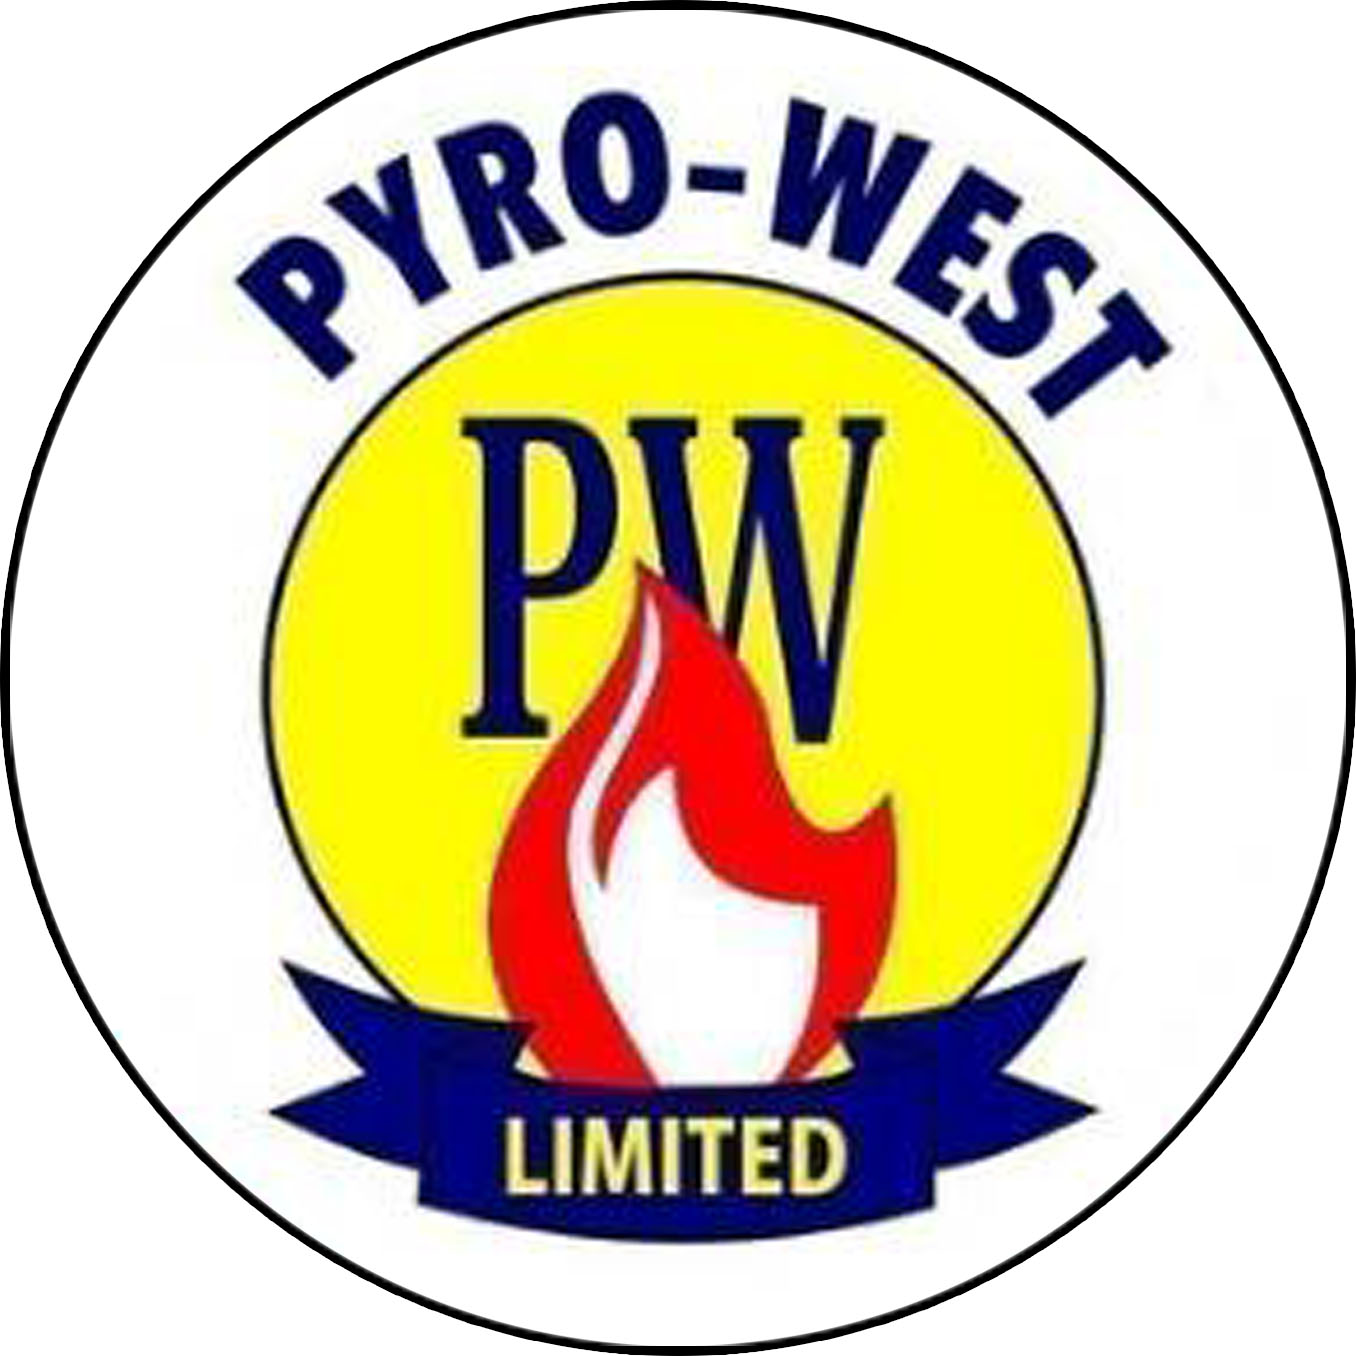 PYRO-WEST LIMITED